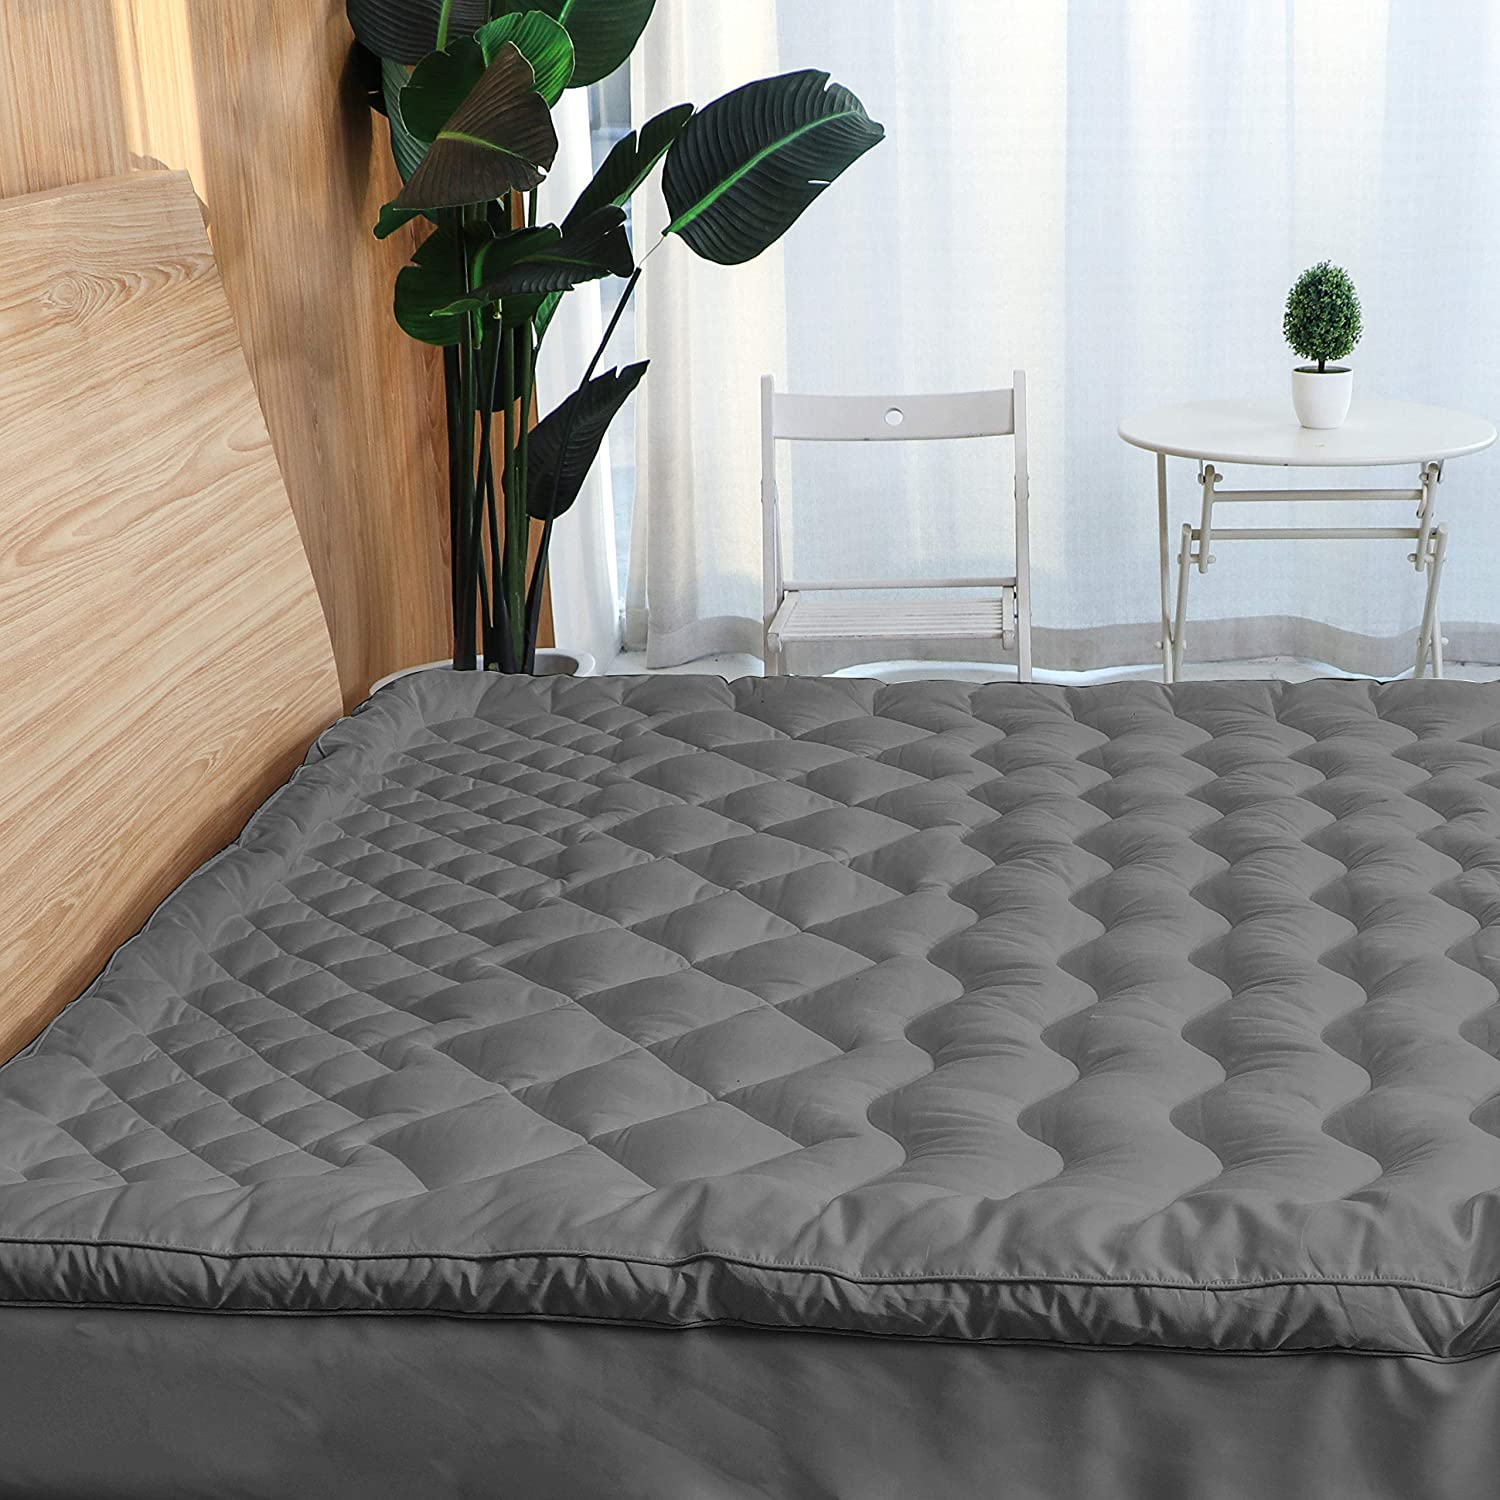 Sale SALE% OFF Marquess Mattress Pad Cover with and B 7-Zone Max 76% OFF Decompression Soft